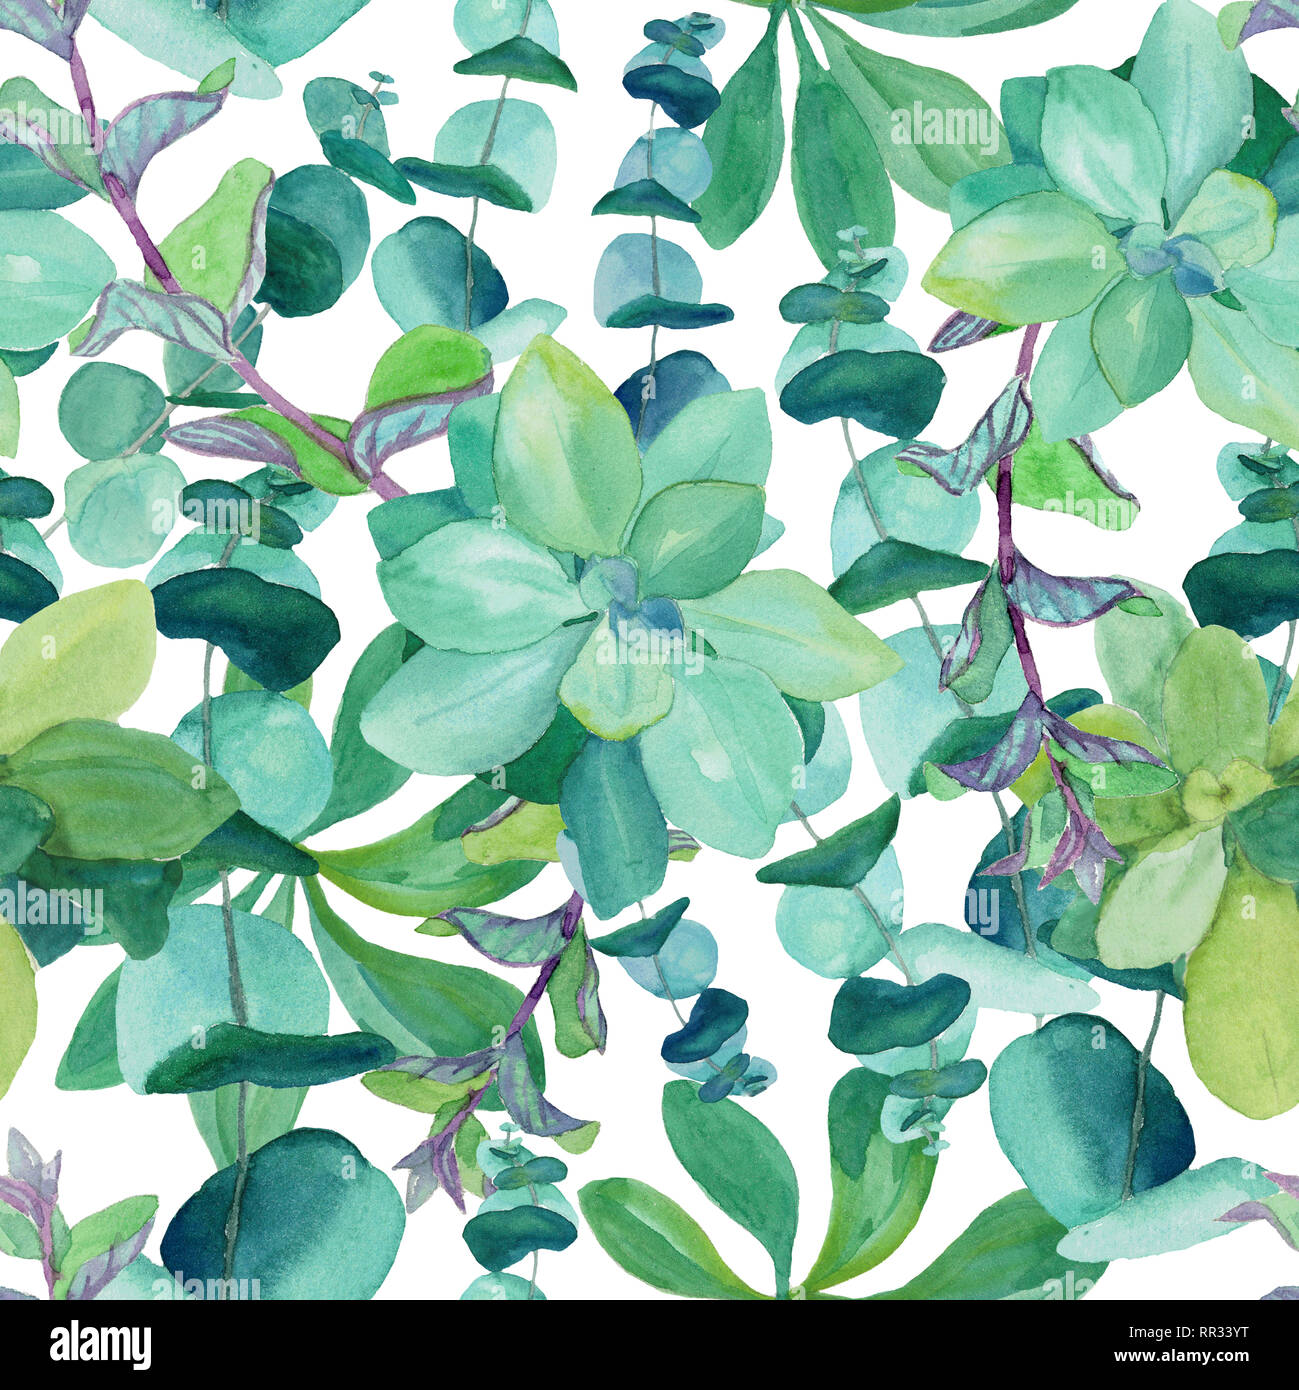 Seamless Watercolor Pattern Of Baby Blue Eucalyptus Decorative Nettle Mint Succulents Botanical Design For Textile Packaging Wrapping Paper Stock Photo Alamy